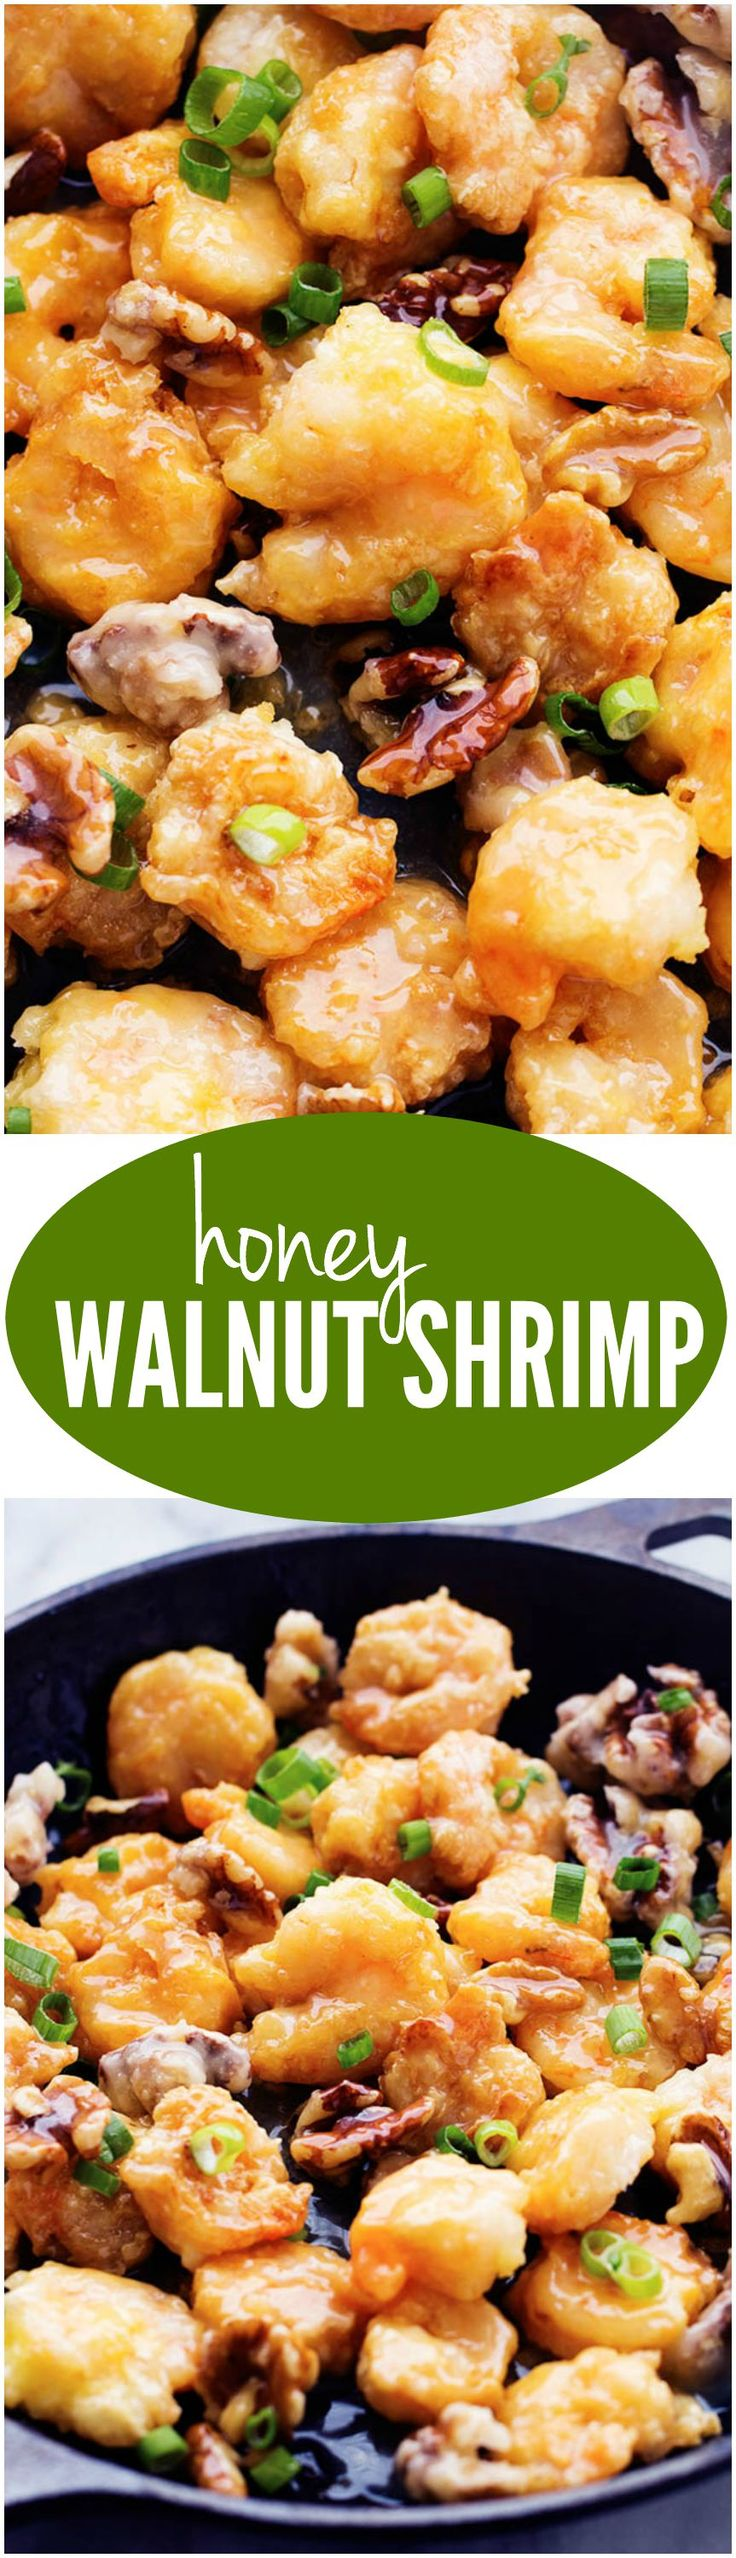 Honey Walnut Shrimp - SO much better than takeout!! The shrimp are crispy and sweet and the best shrimp you will eat!